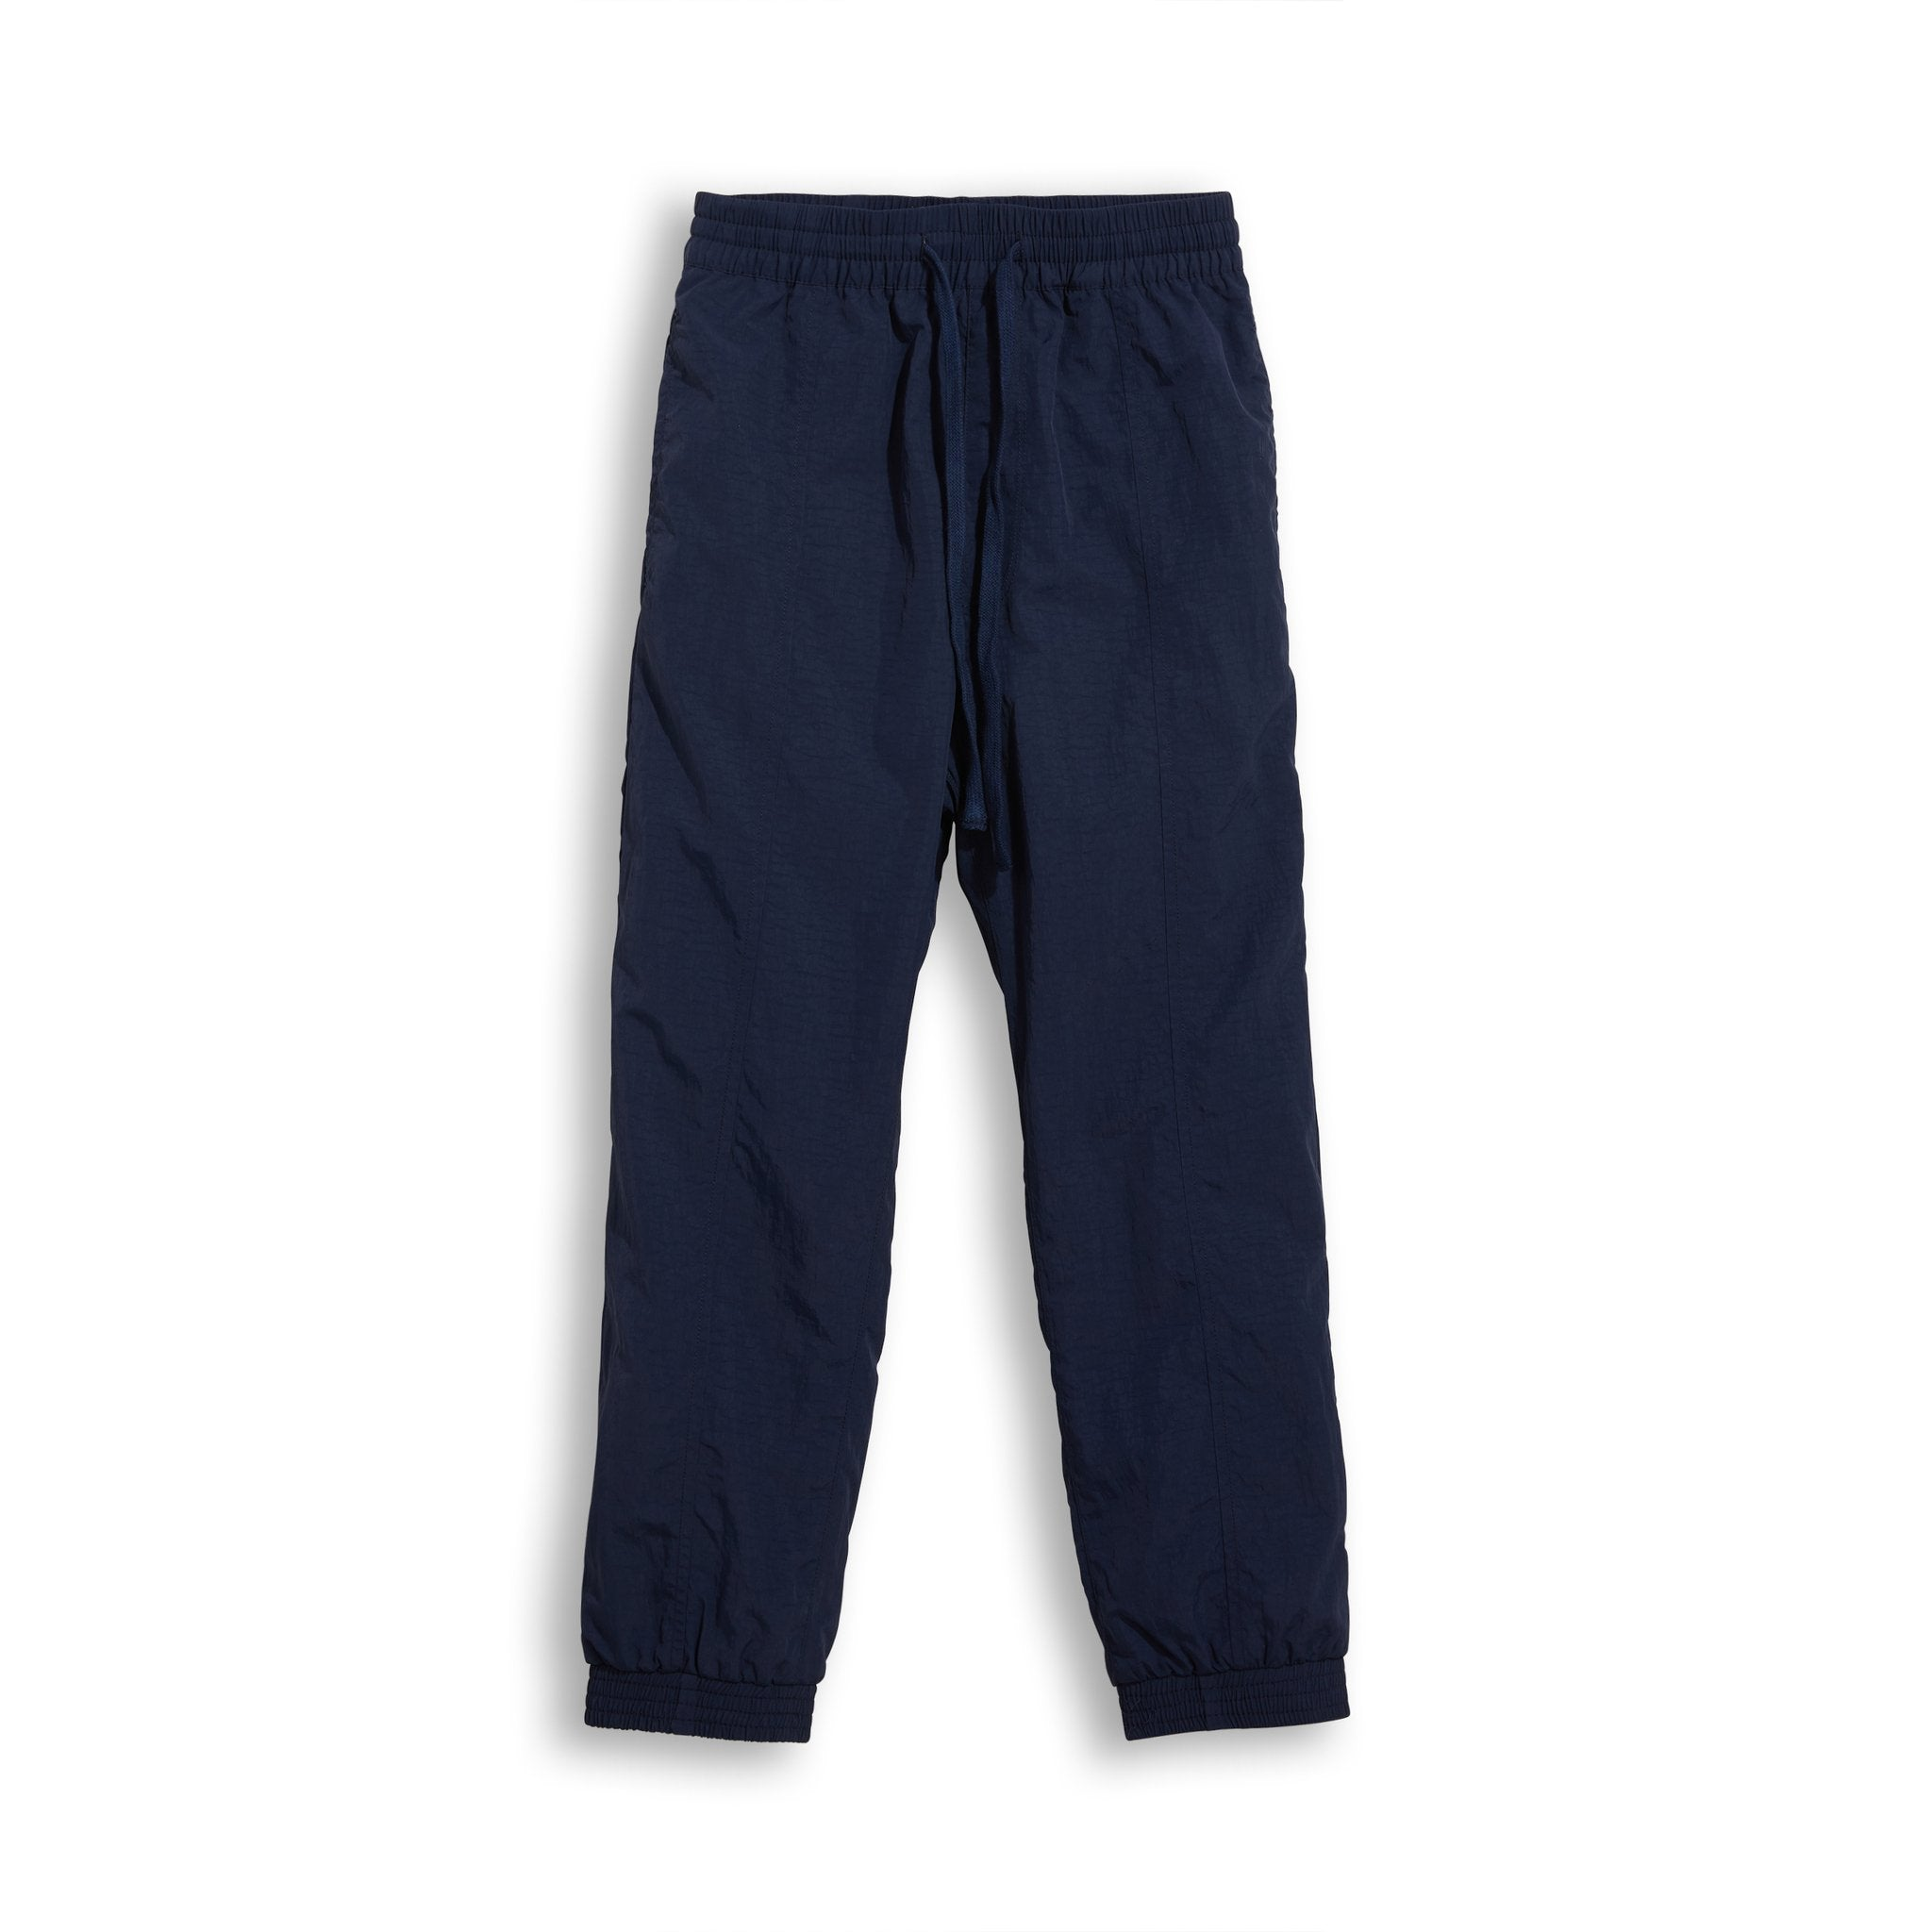 Connie Sailor Blue Track Pants Unisex